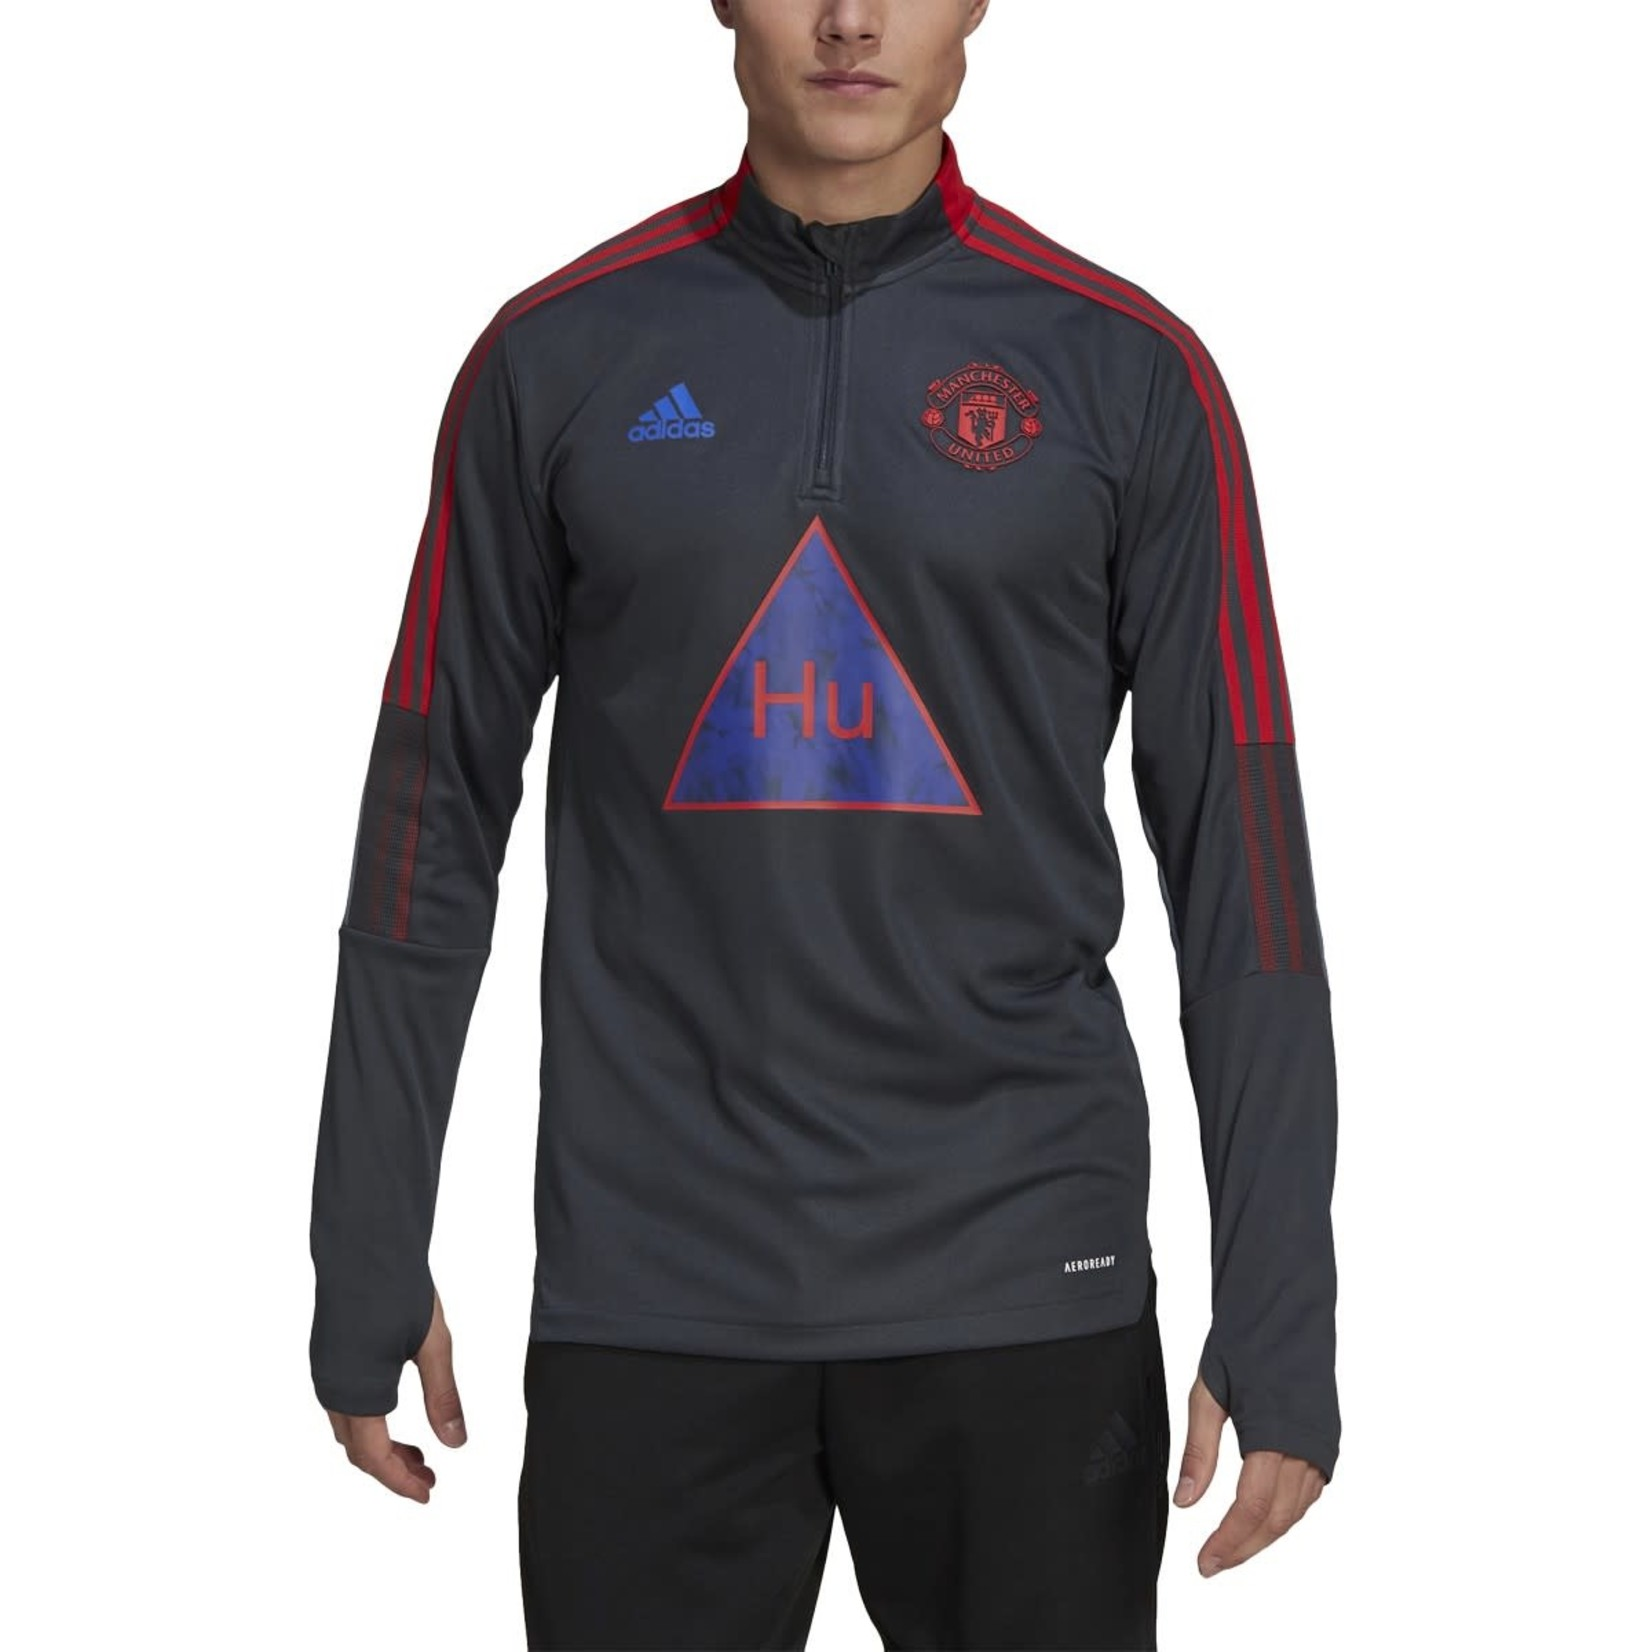 ADIDAS MANCHESTER UNITED HUMANRACE TRAINING TOP (GRAY/RED)